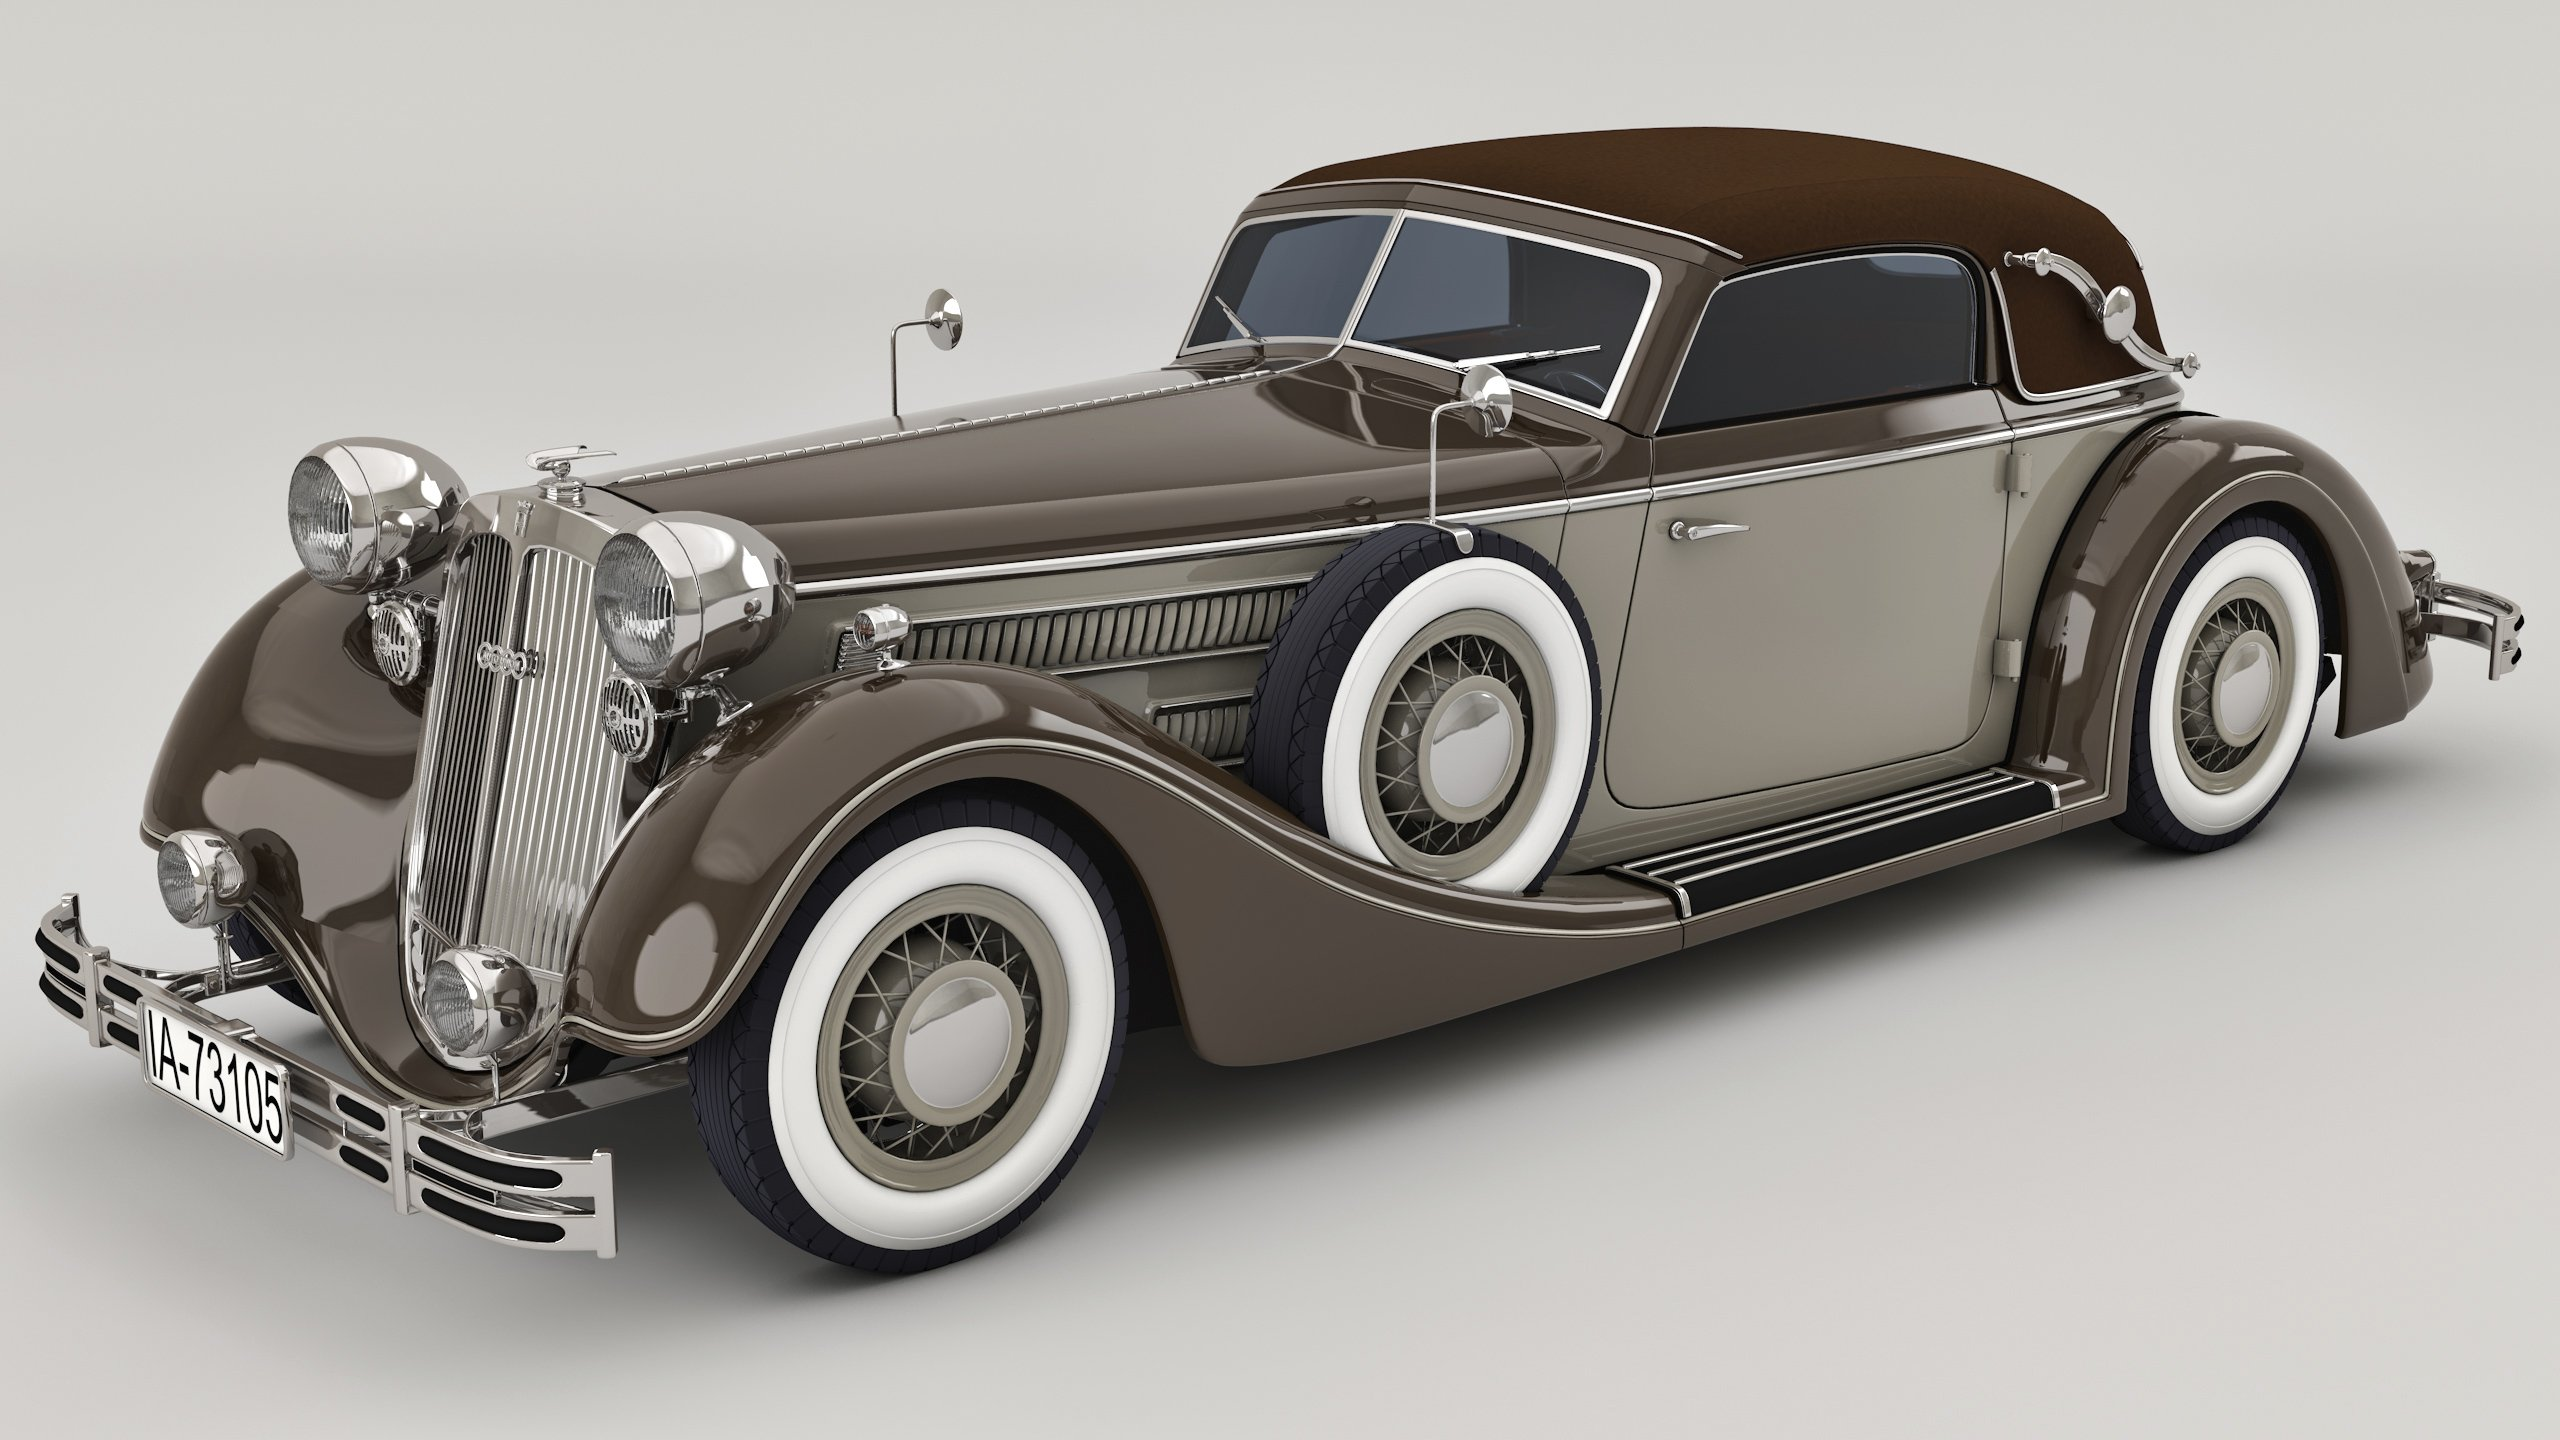 1937 horch 853a sport cabrio by samcurry d4bxi2a